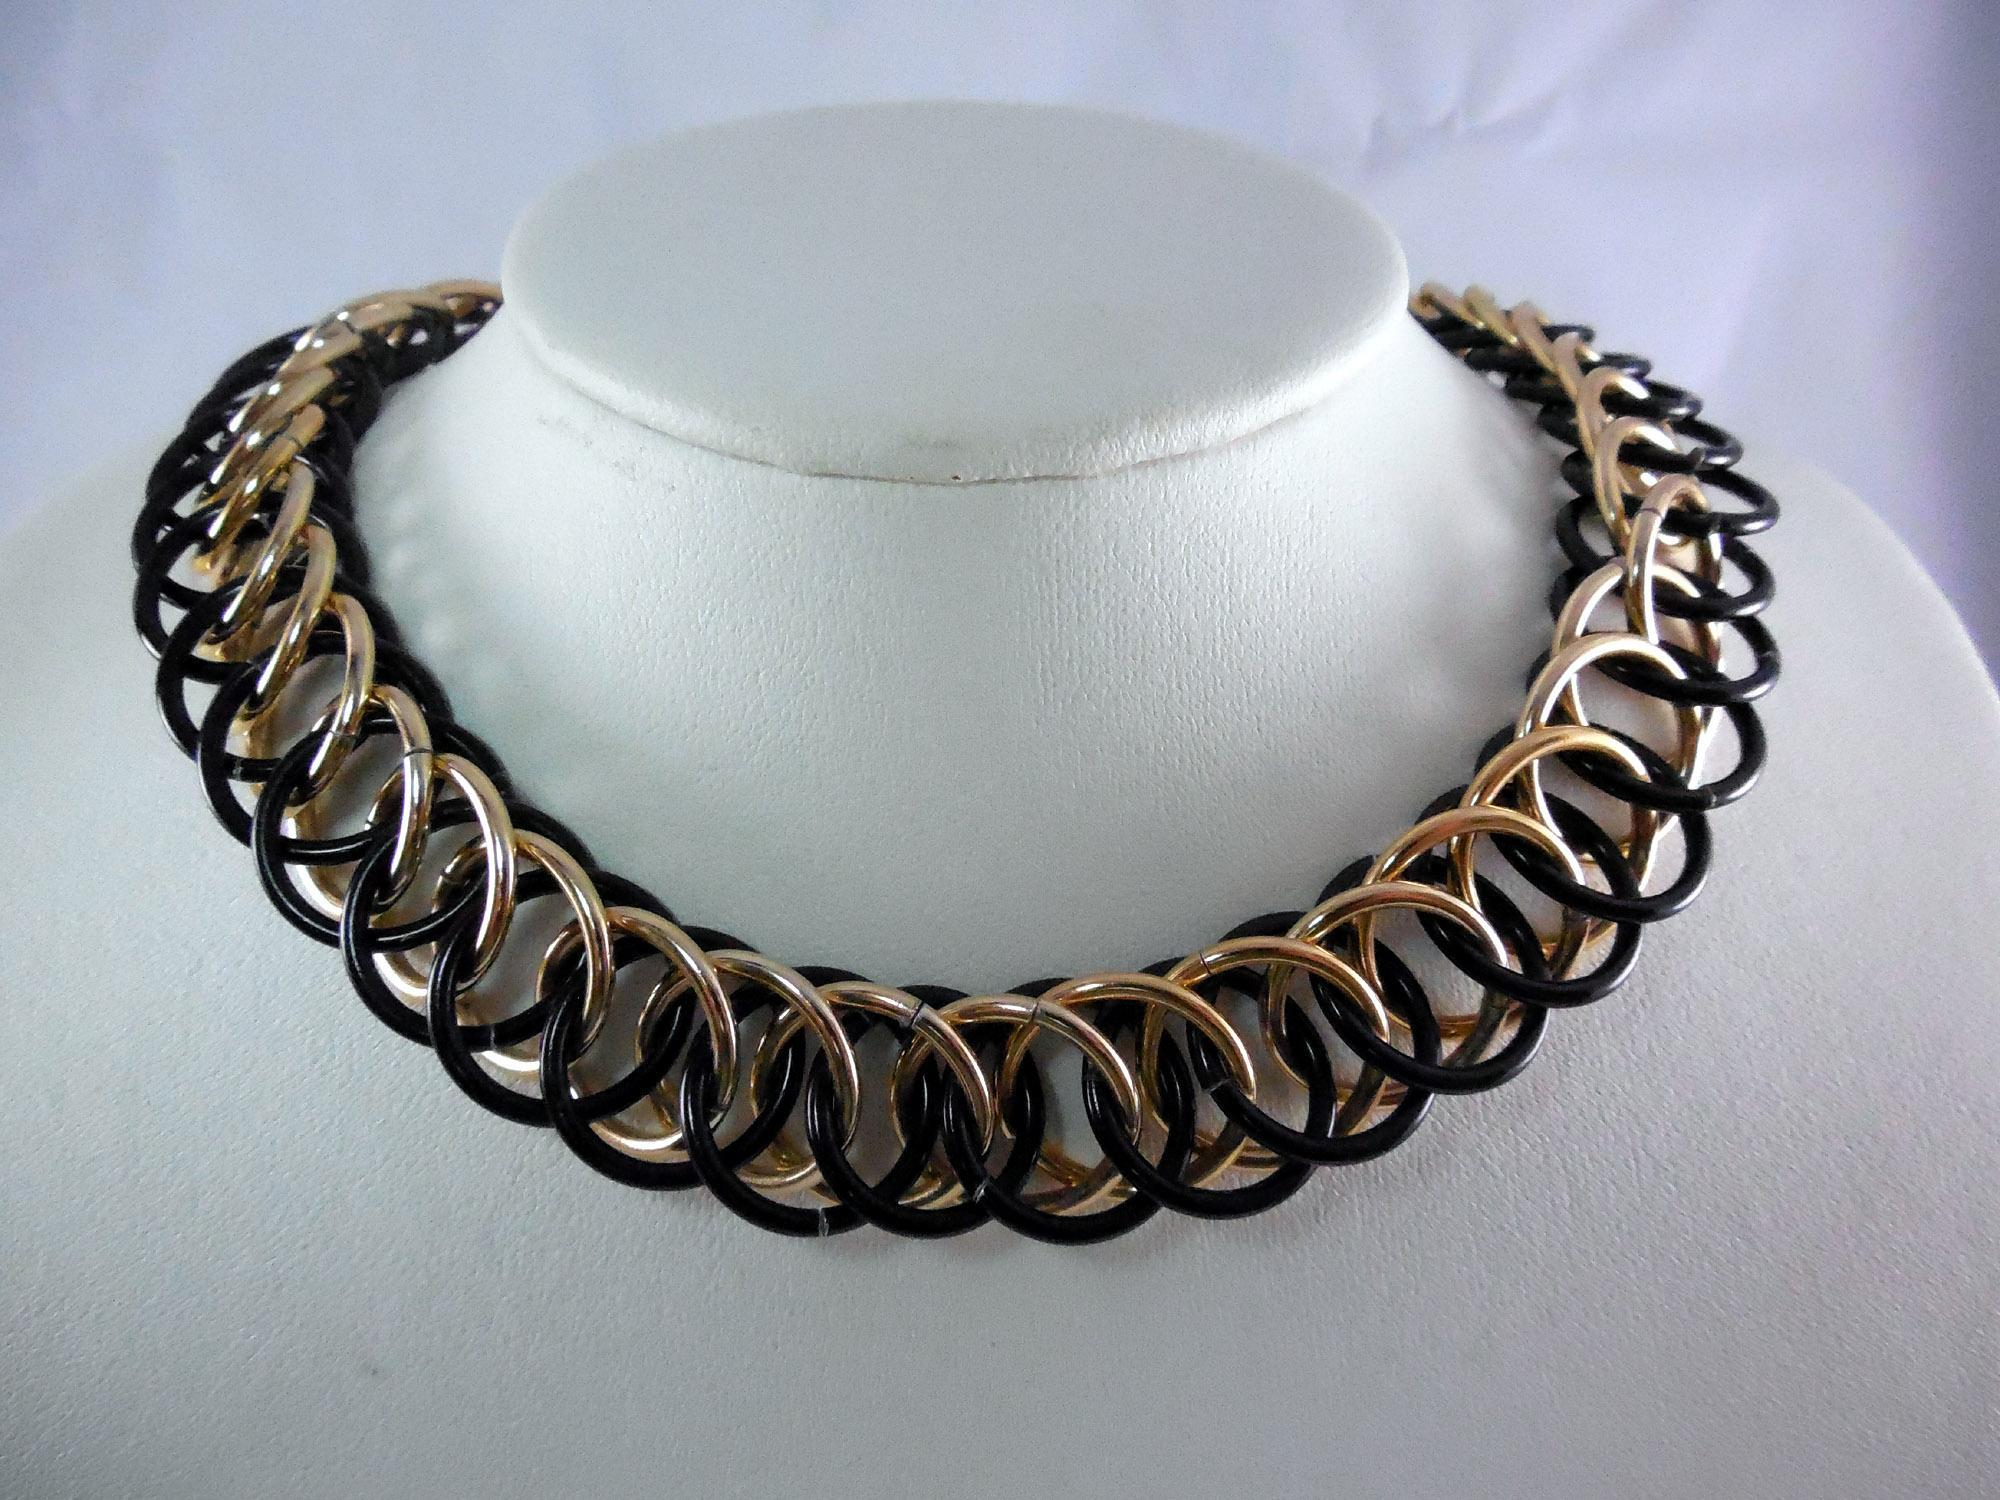 Vintage French Necklace - Interlocking Circles in Gold and Black